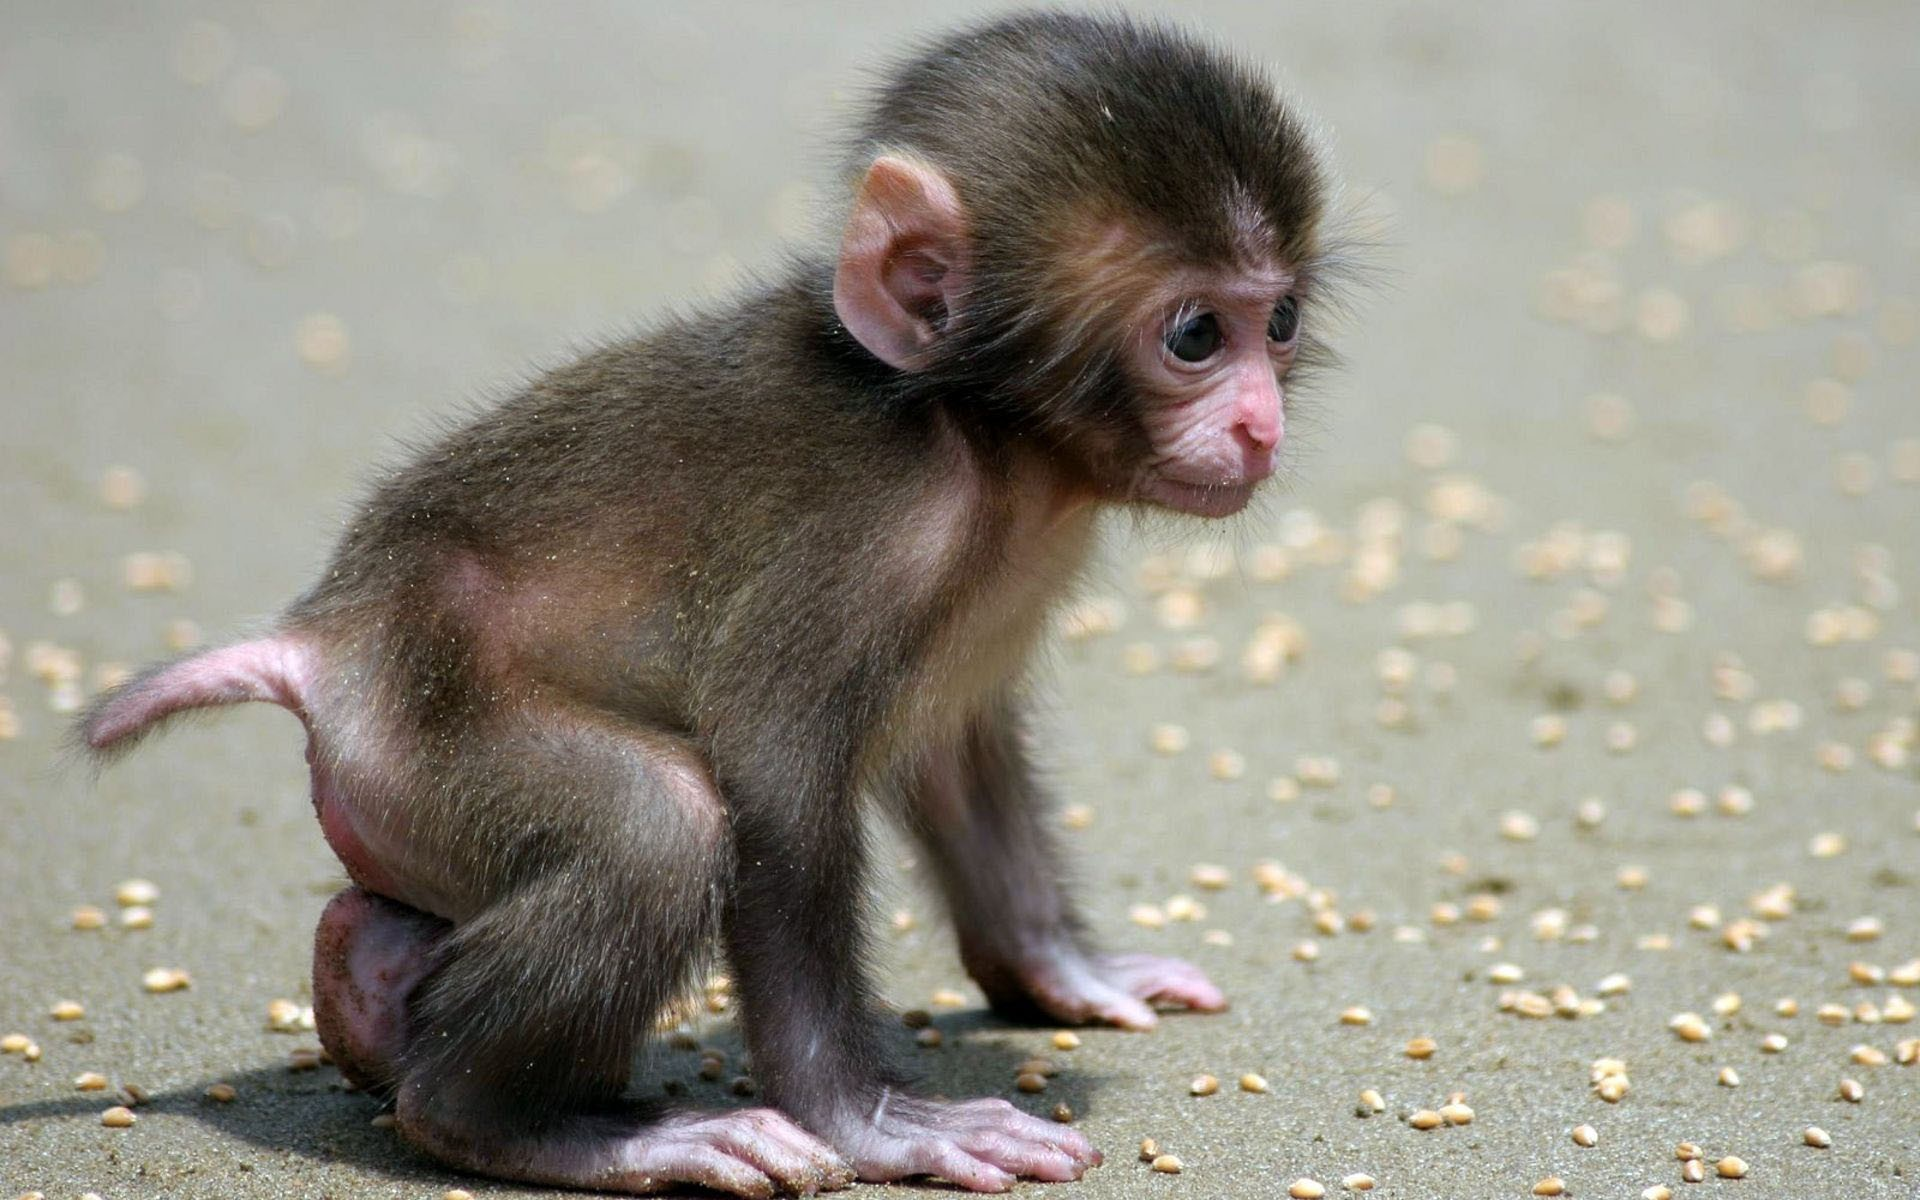 baby picture download hd wallpapers of animal baby baby animals 1920x1200